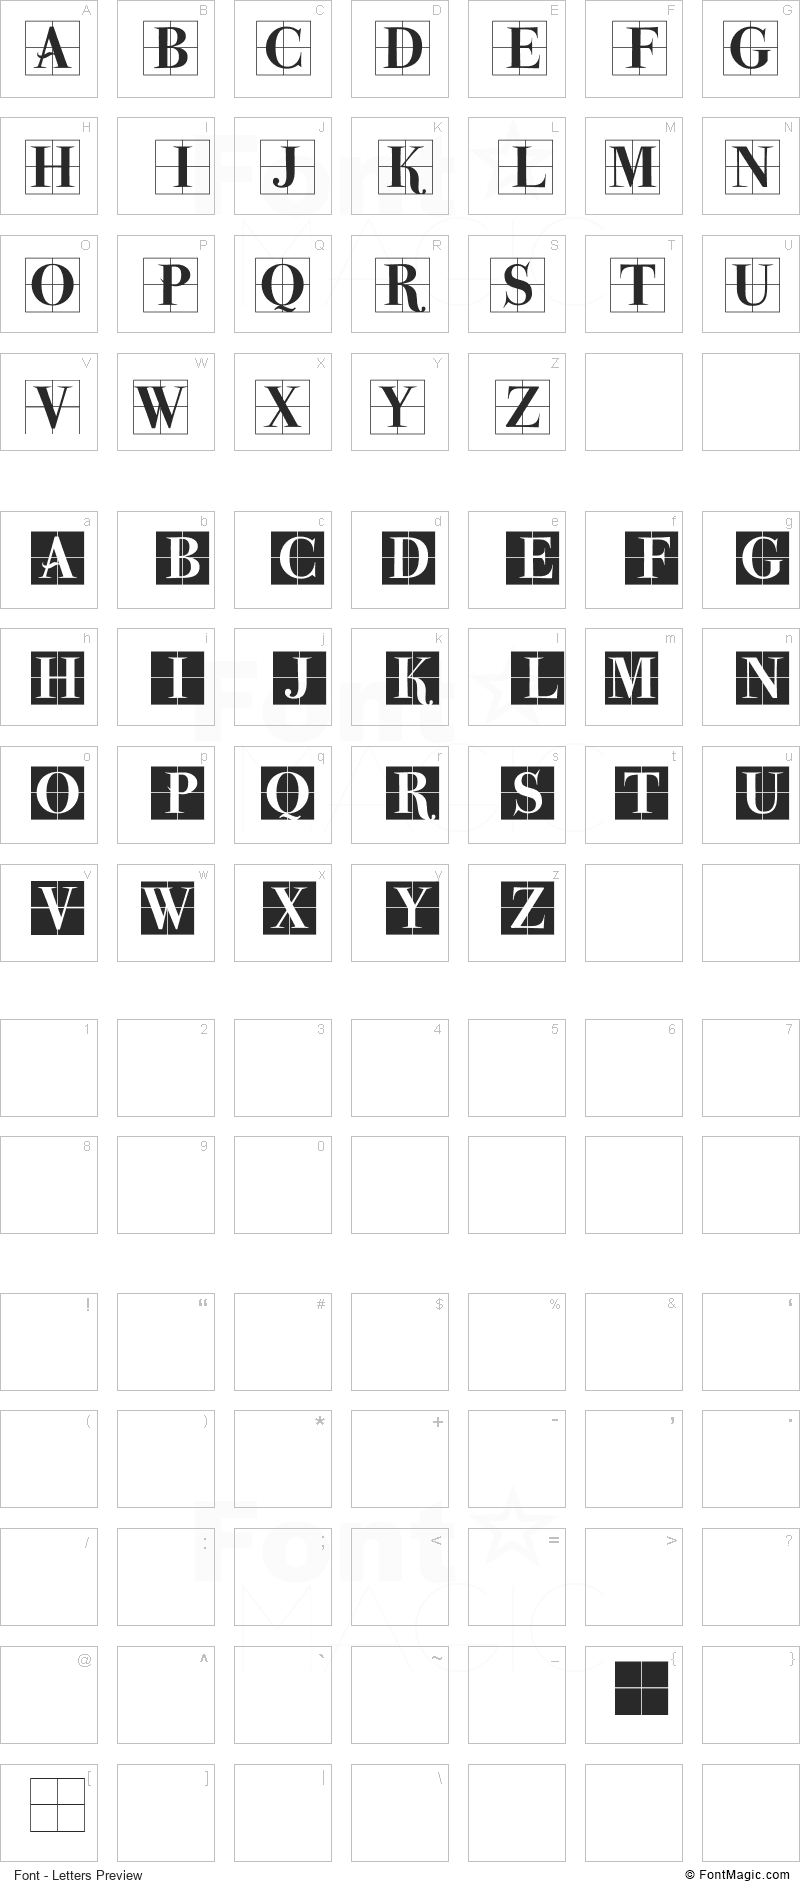 Parma Initialen MK Font - All Latters Preview Chart